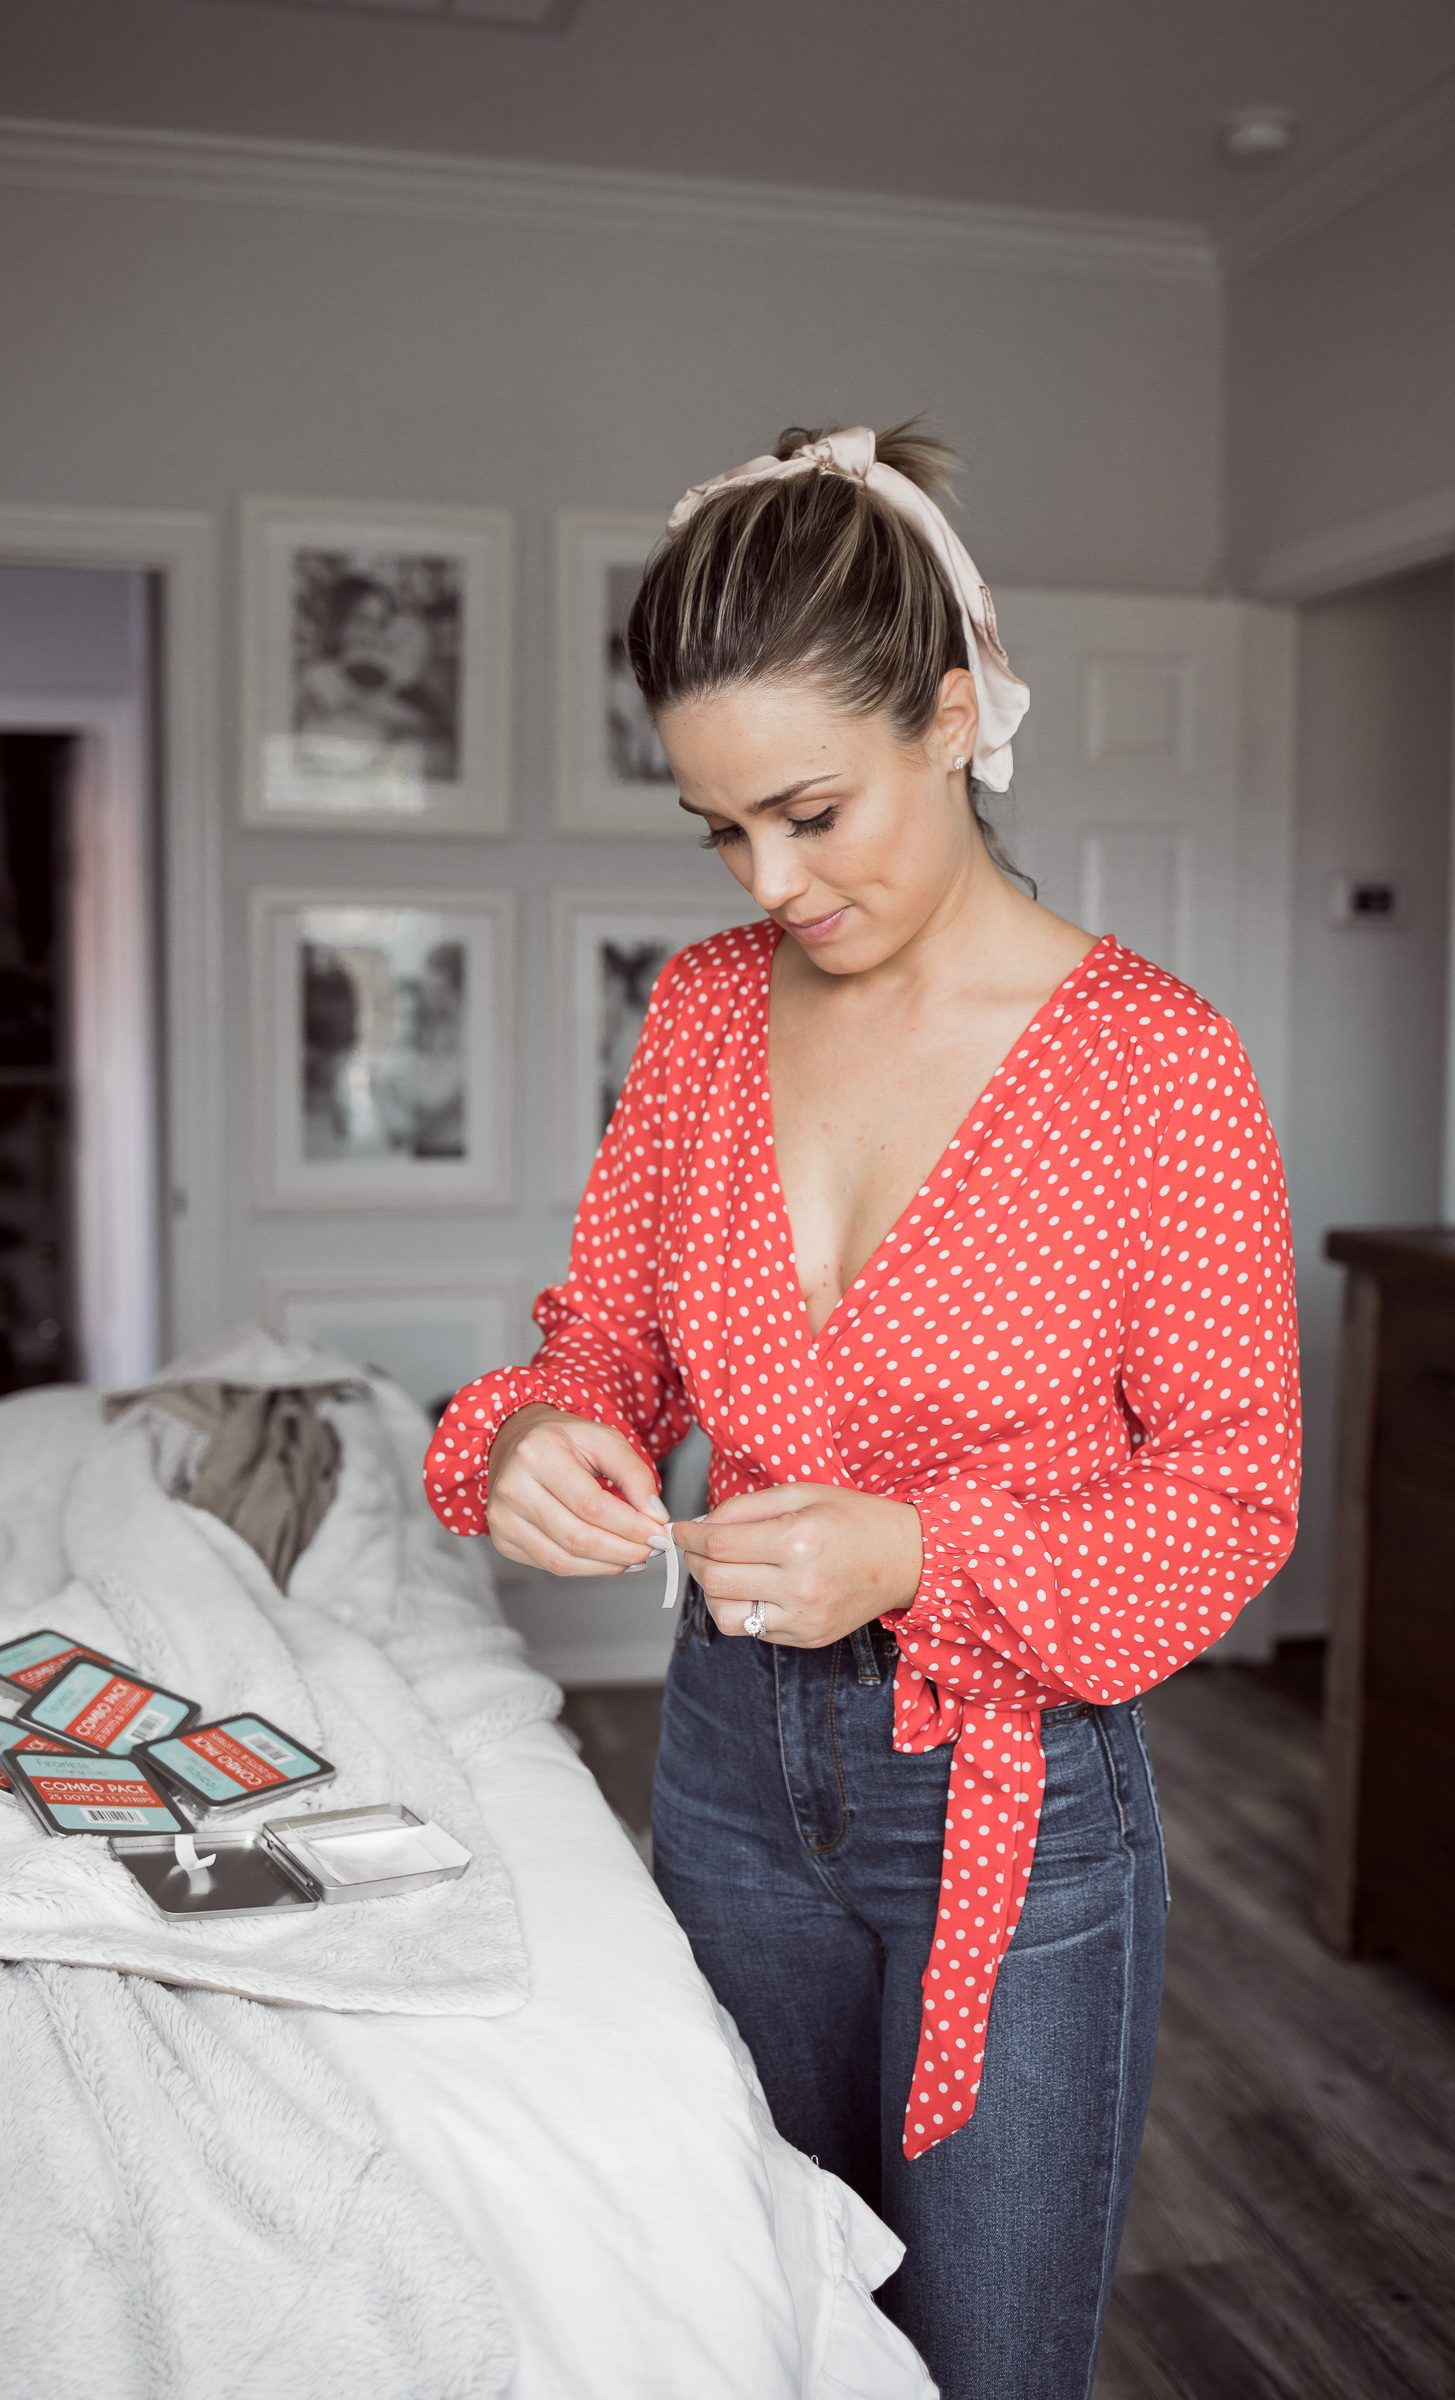 Houston Fashion blogger Uptown with Elly Brown shares how Double-Sided Fashion Tape will most likely fix all your wardrobe mishaps.